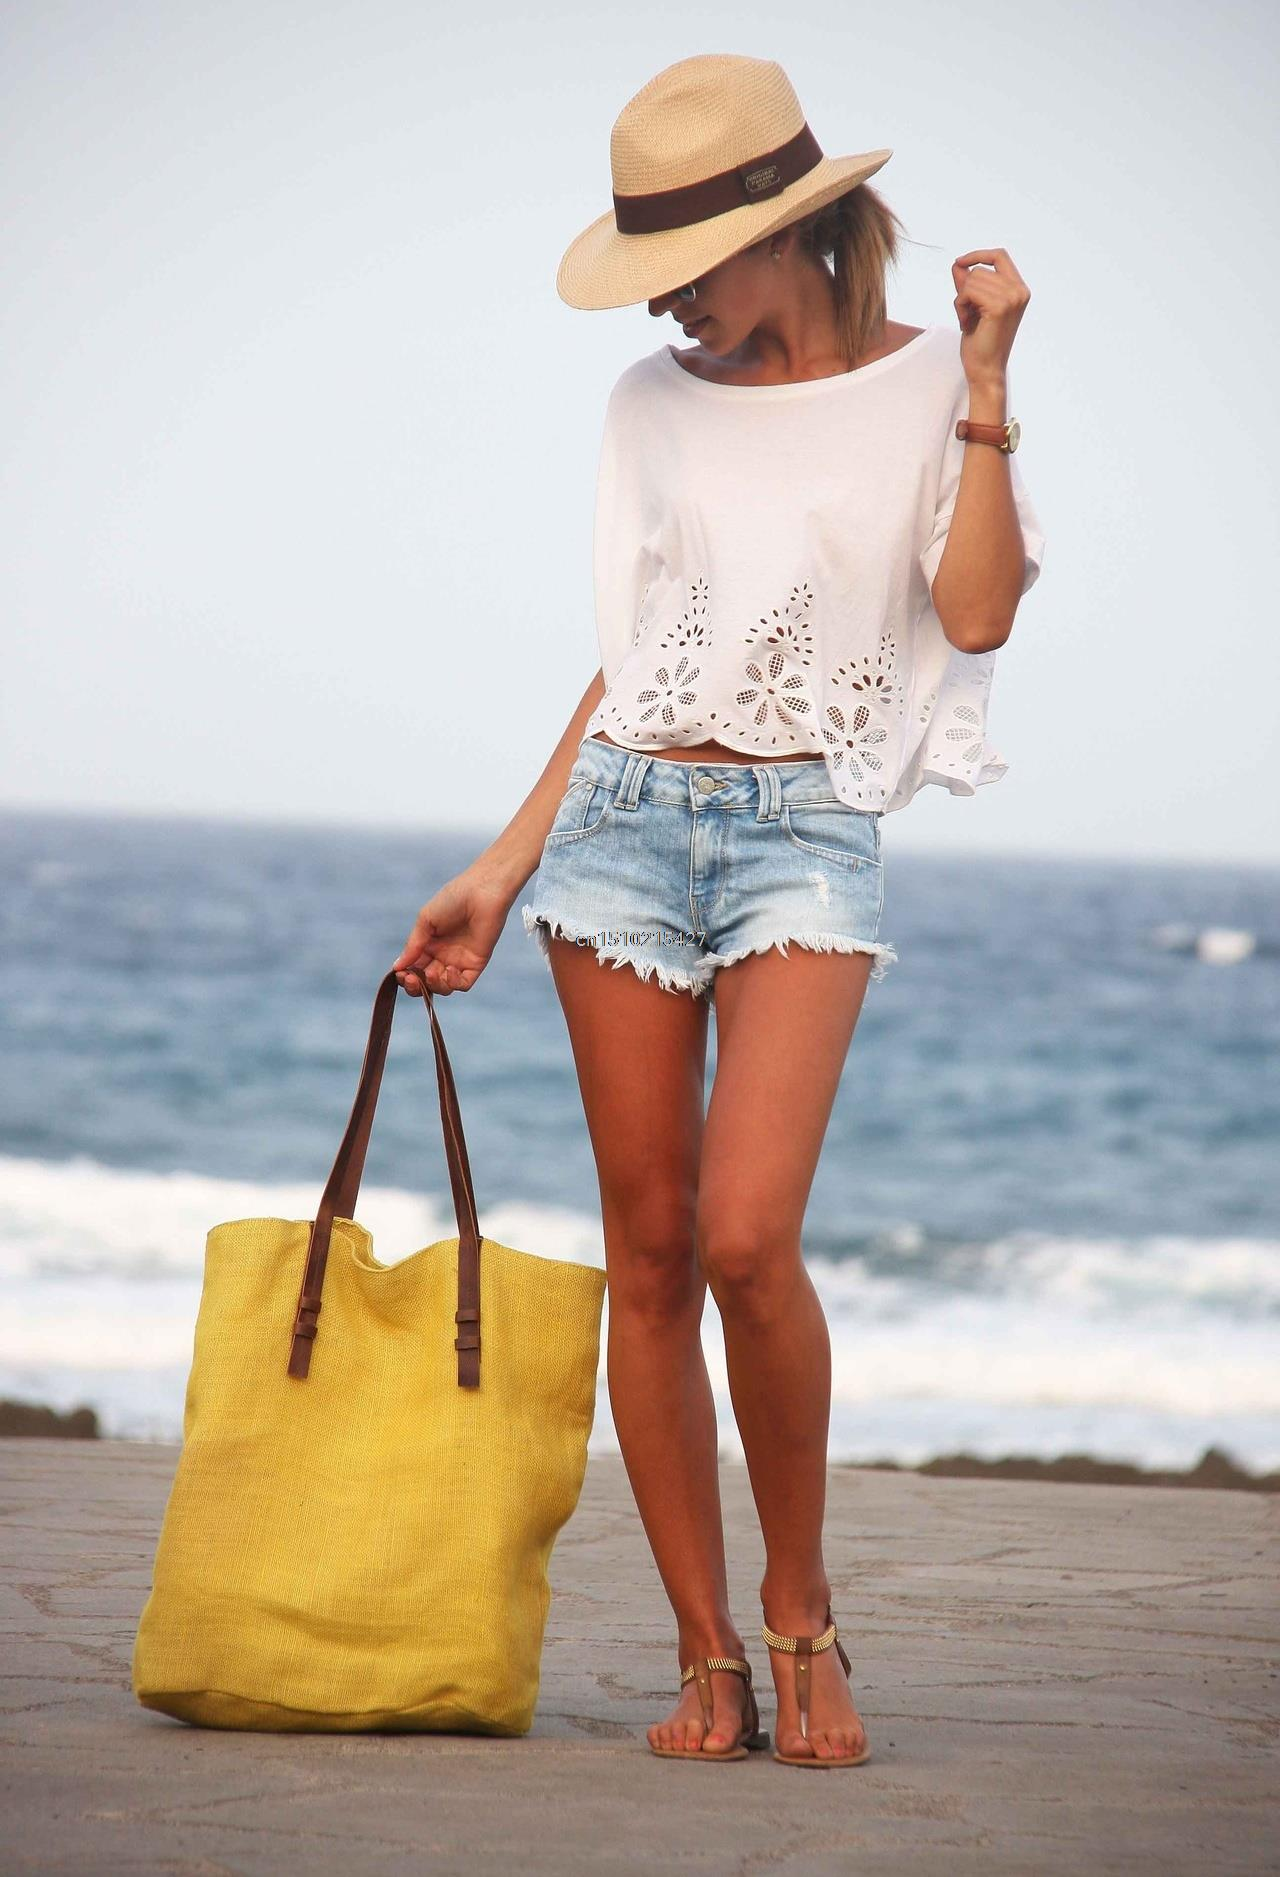 Sensational Outfits For The Beach Its Gotta Be Cute Beach Outfit Ideas Largest Home Design Picture Inspirations Pitcheantrous